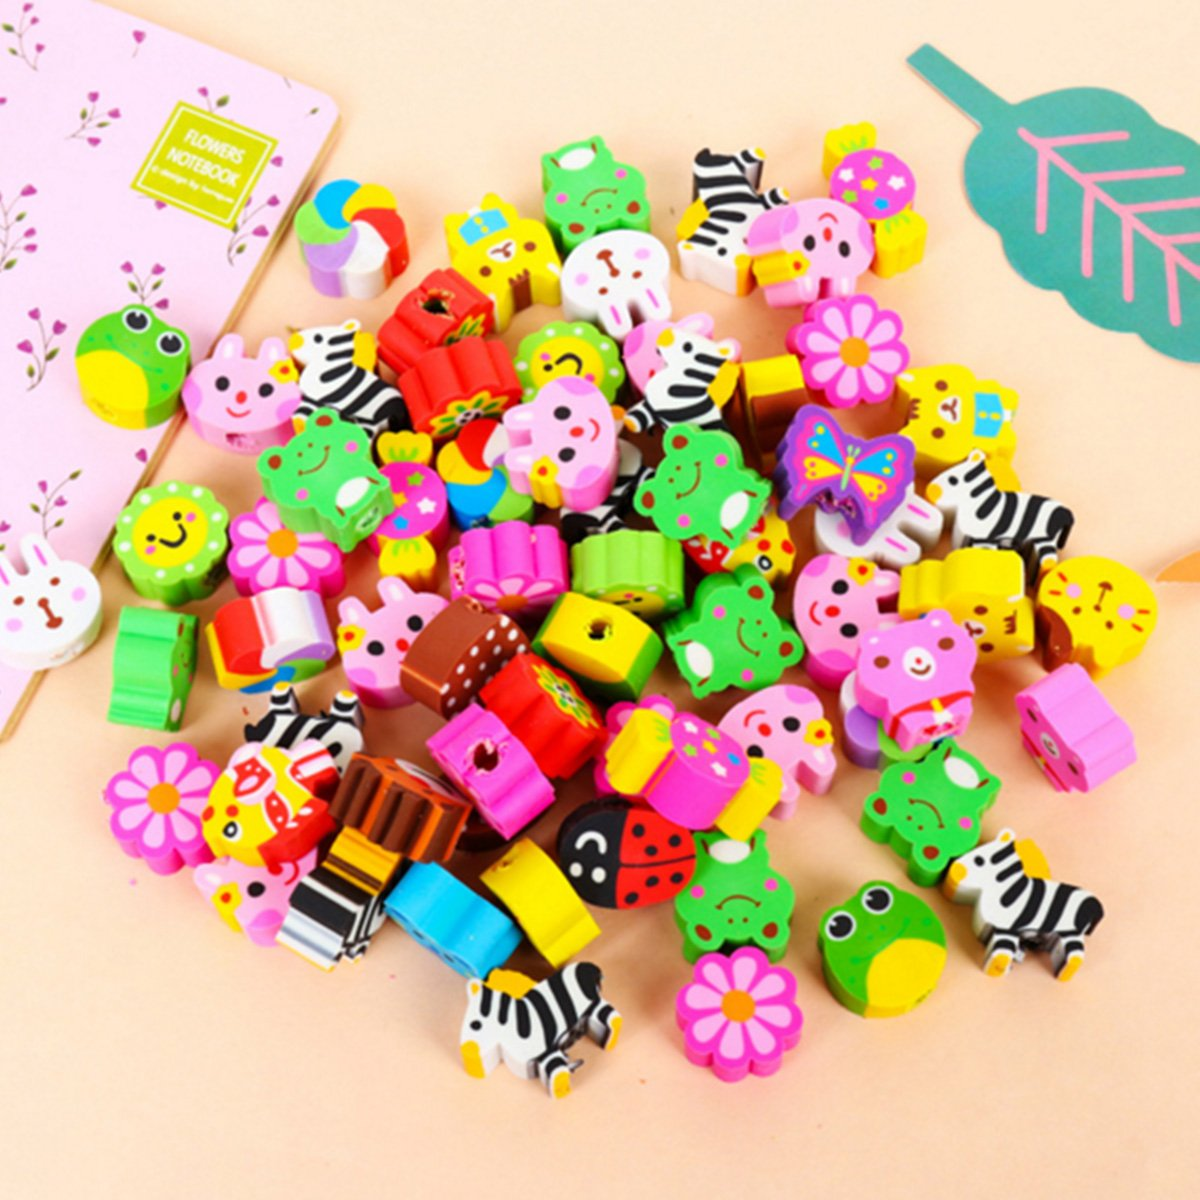 12 Mini Bags, 48 Erasers Total School Supplies Classroom Student Prize Packs Toys /& Games Colorful Mini Fruits /& Vegetables Tiny Foods Miniature Pencil Erasers for Children Party Favors